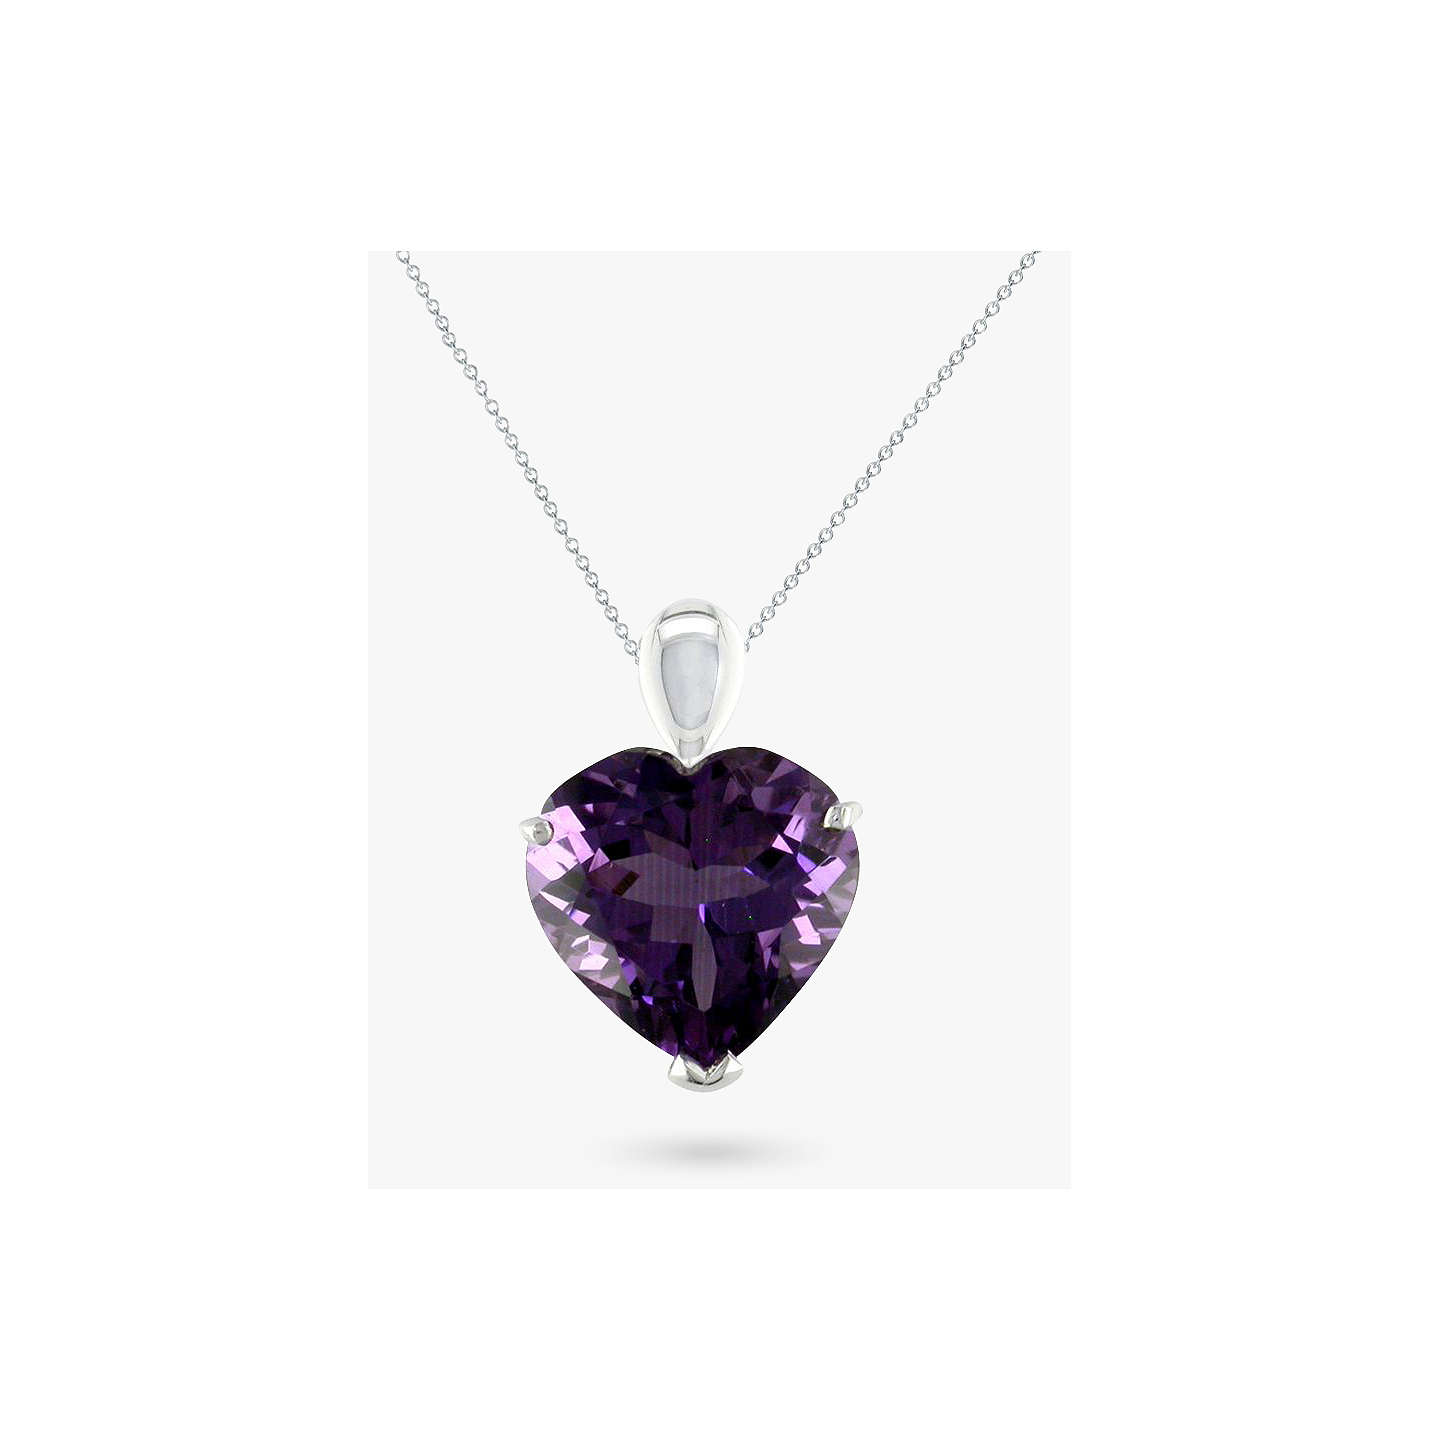 Ewa 9ct white gold amethyst heart pendant necklace purple at john lewis buyewa 9ct white gold amethyst heart pendant necklace purple online at johnlewis mozeypictures Gallery